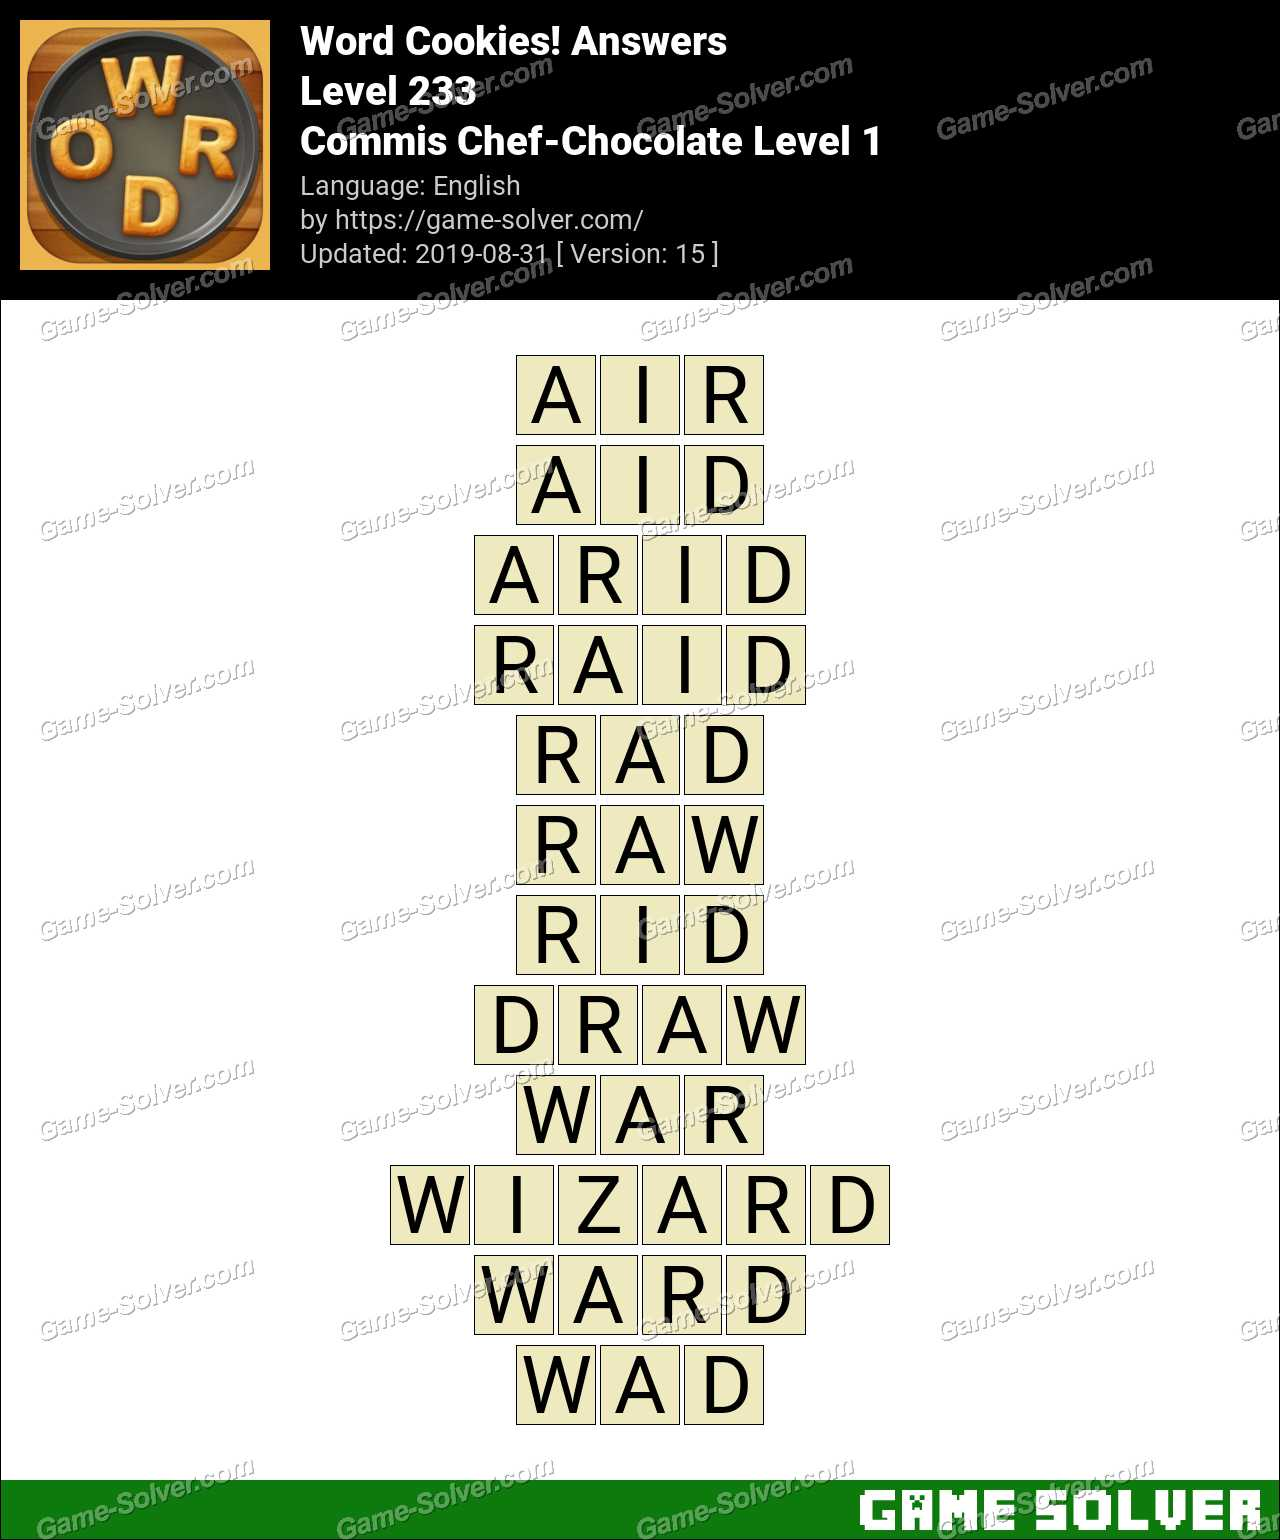 Word Cookies Commis Chef-Chocolate Level 1 Answers